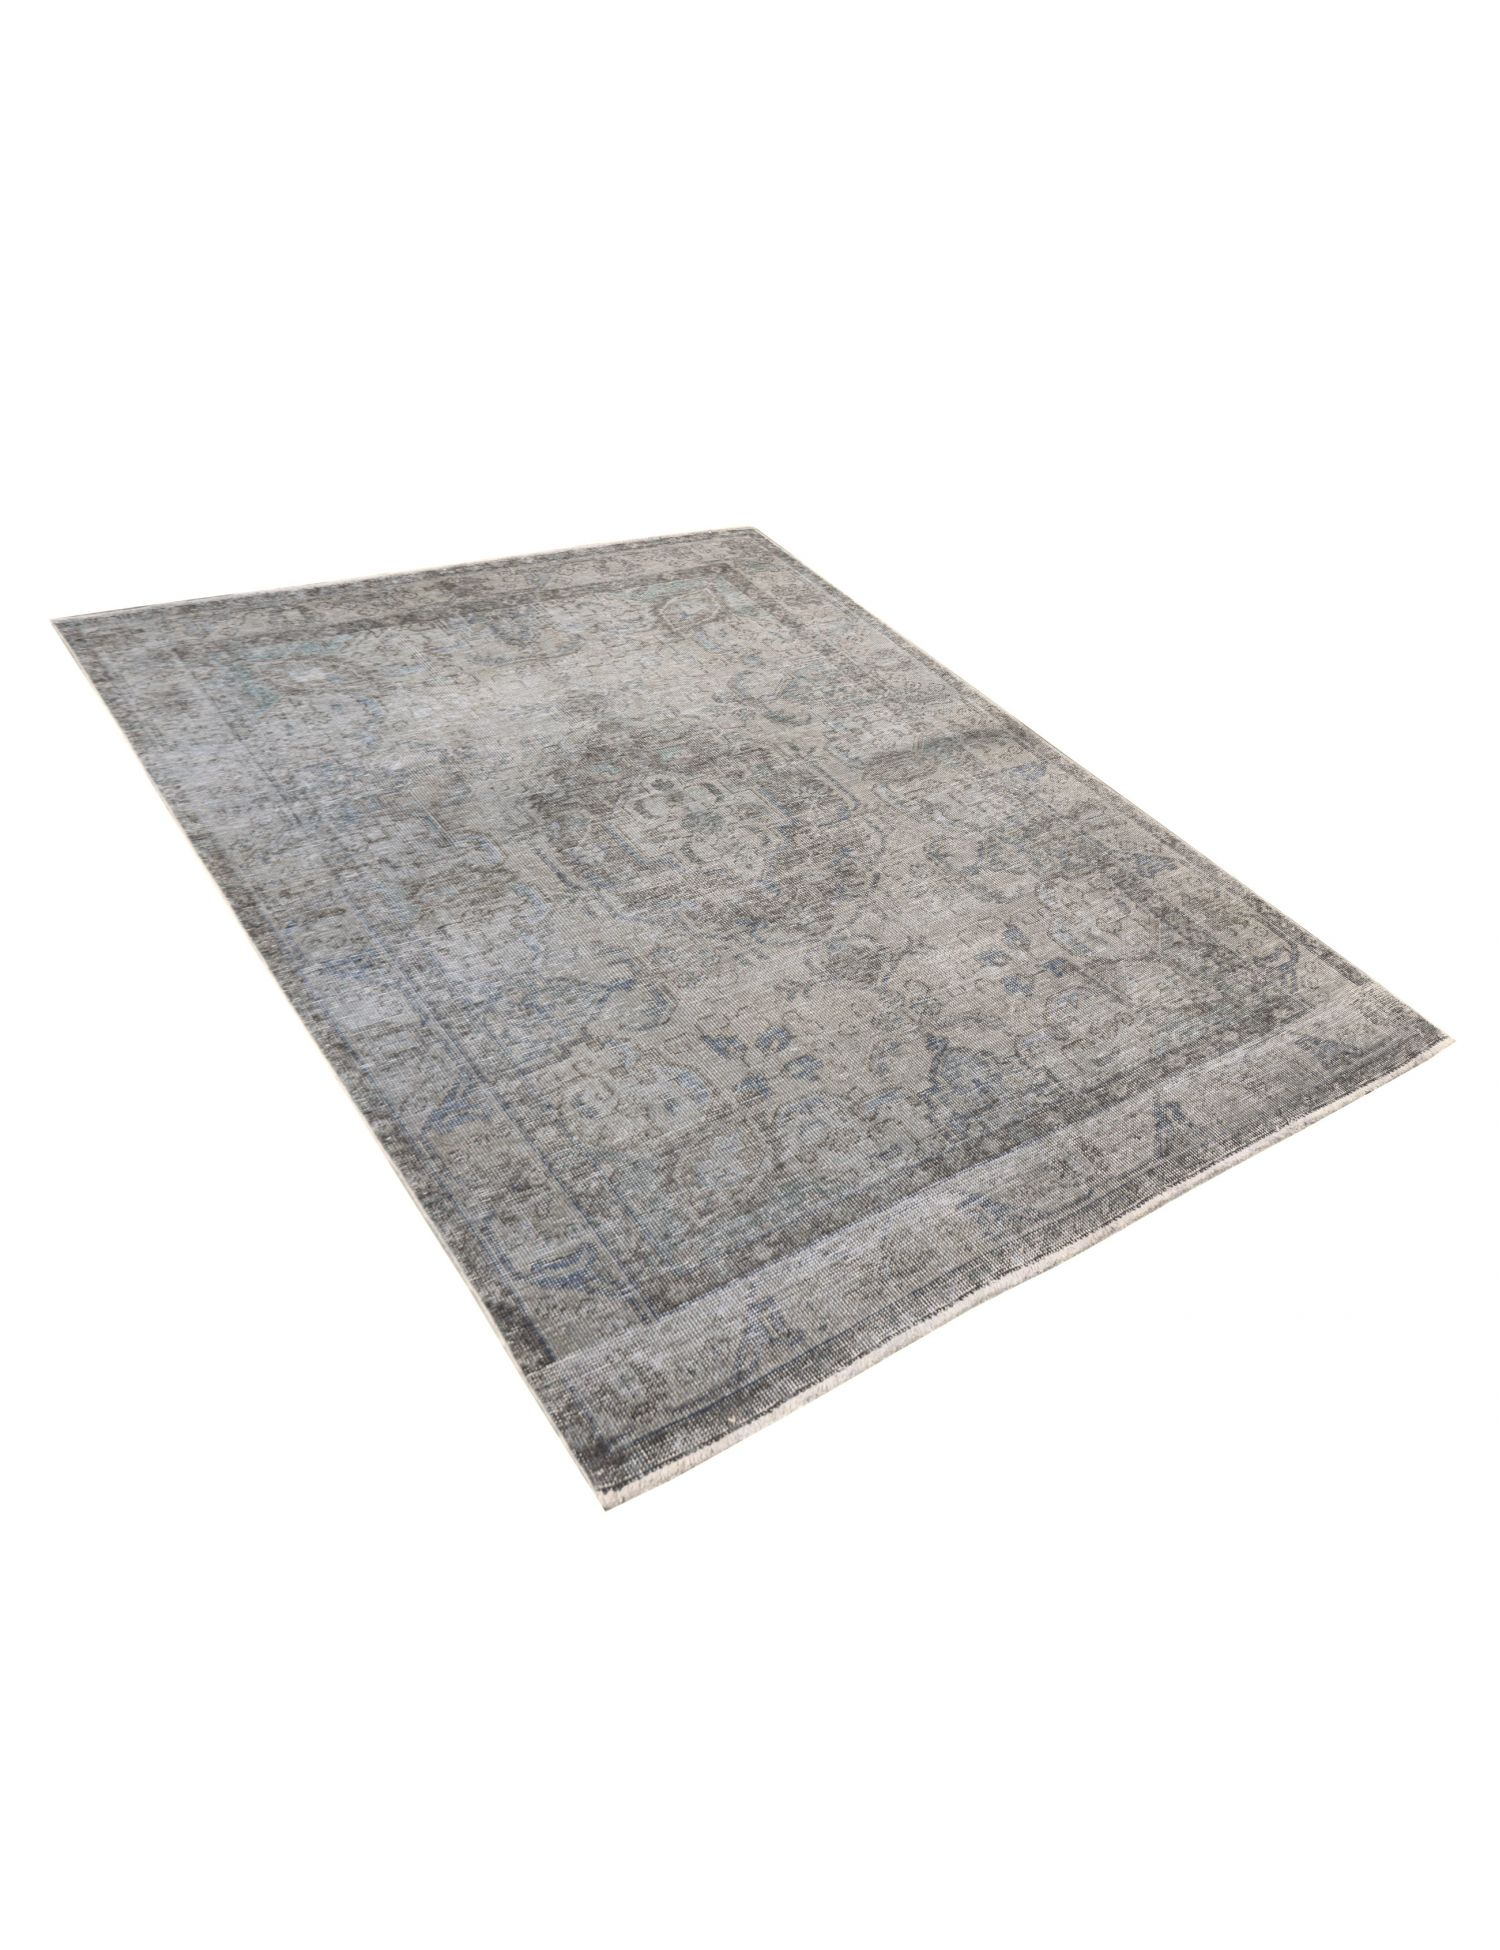 Vintage Carpet  grey <br/>184 x 132 cm